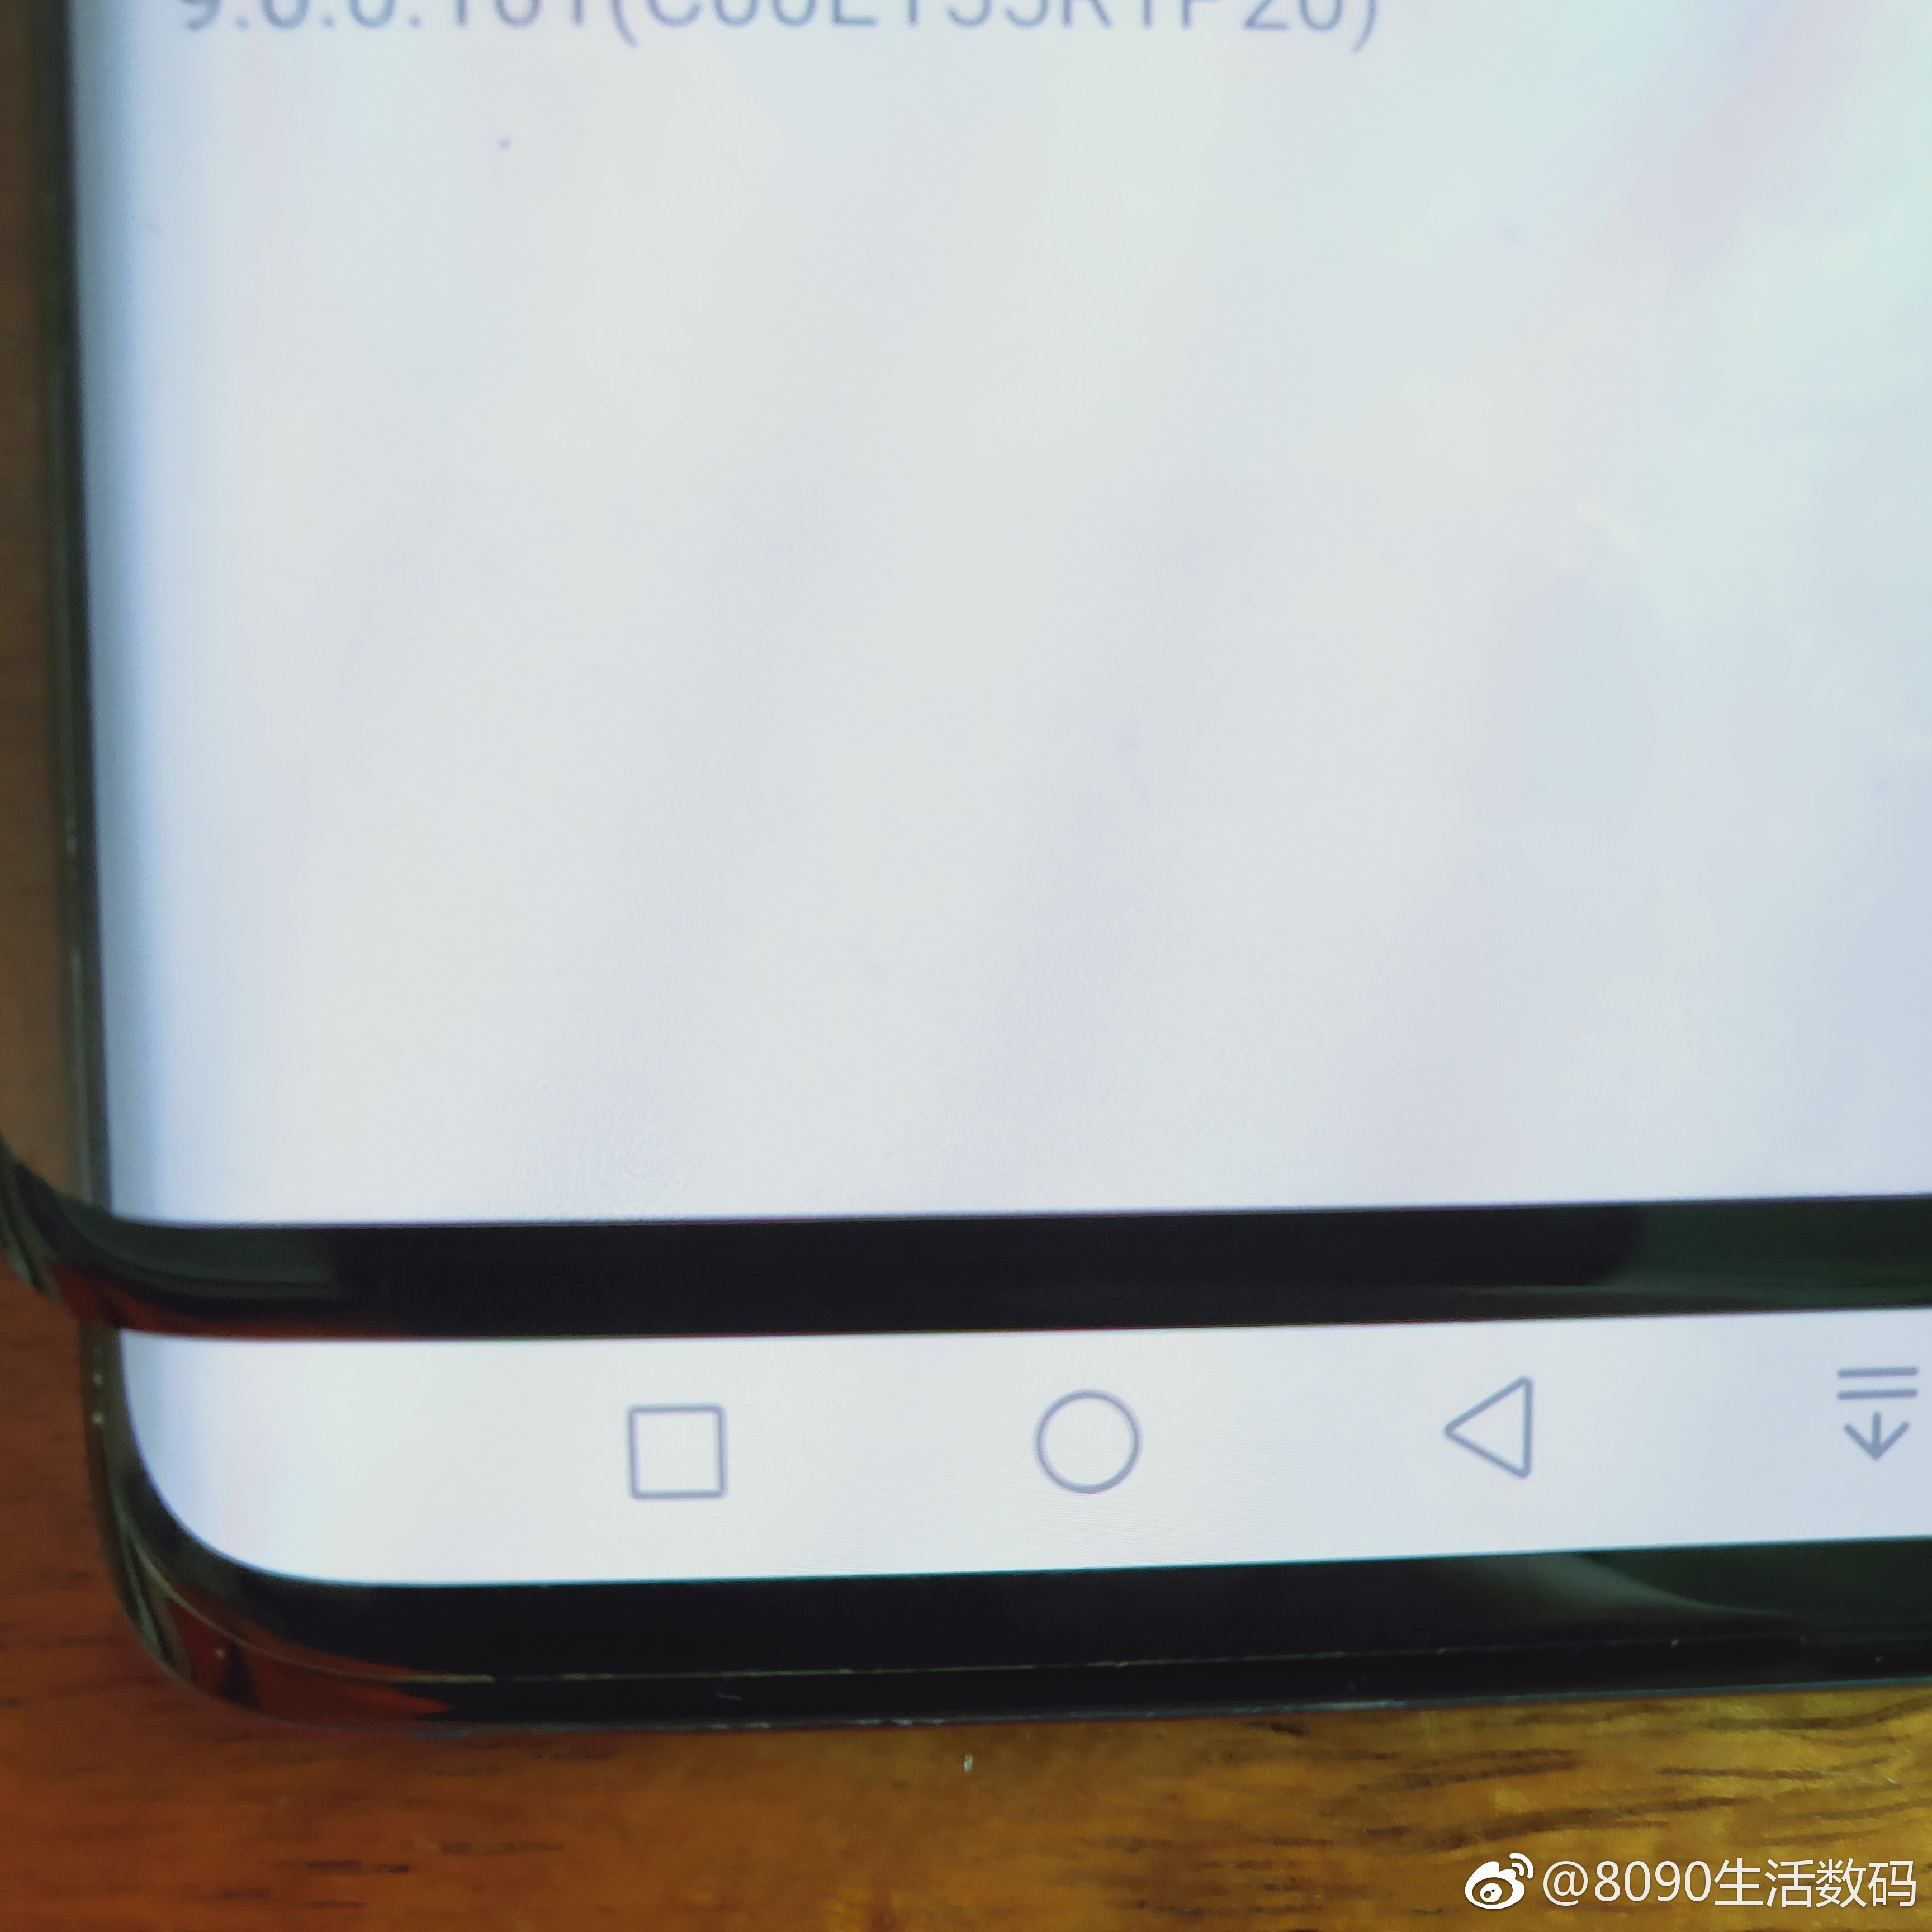 Samsung Galaxy S10+ Screen Protector Allegedly Leaked, Suggests Infinity-O Display